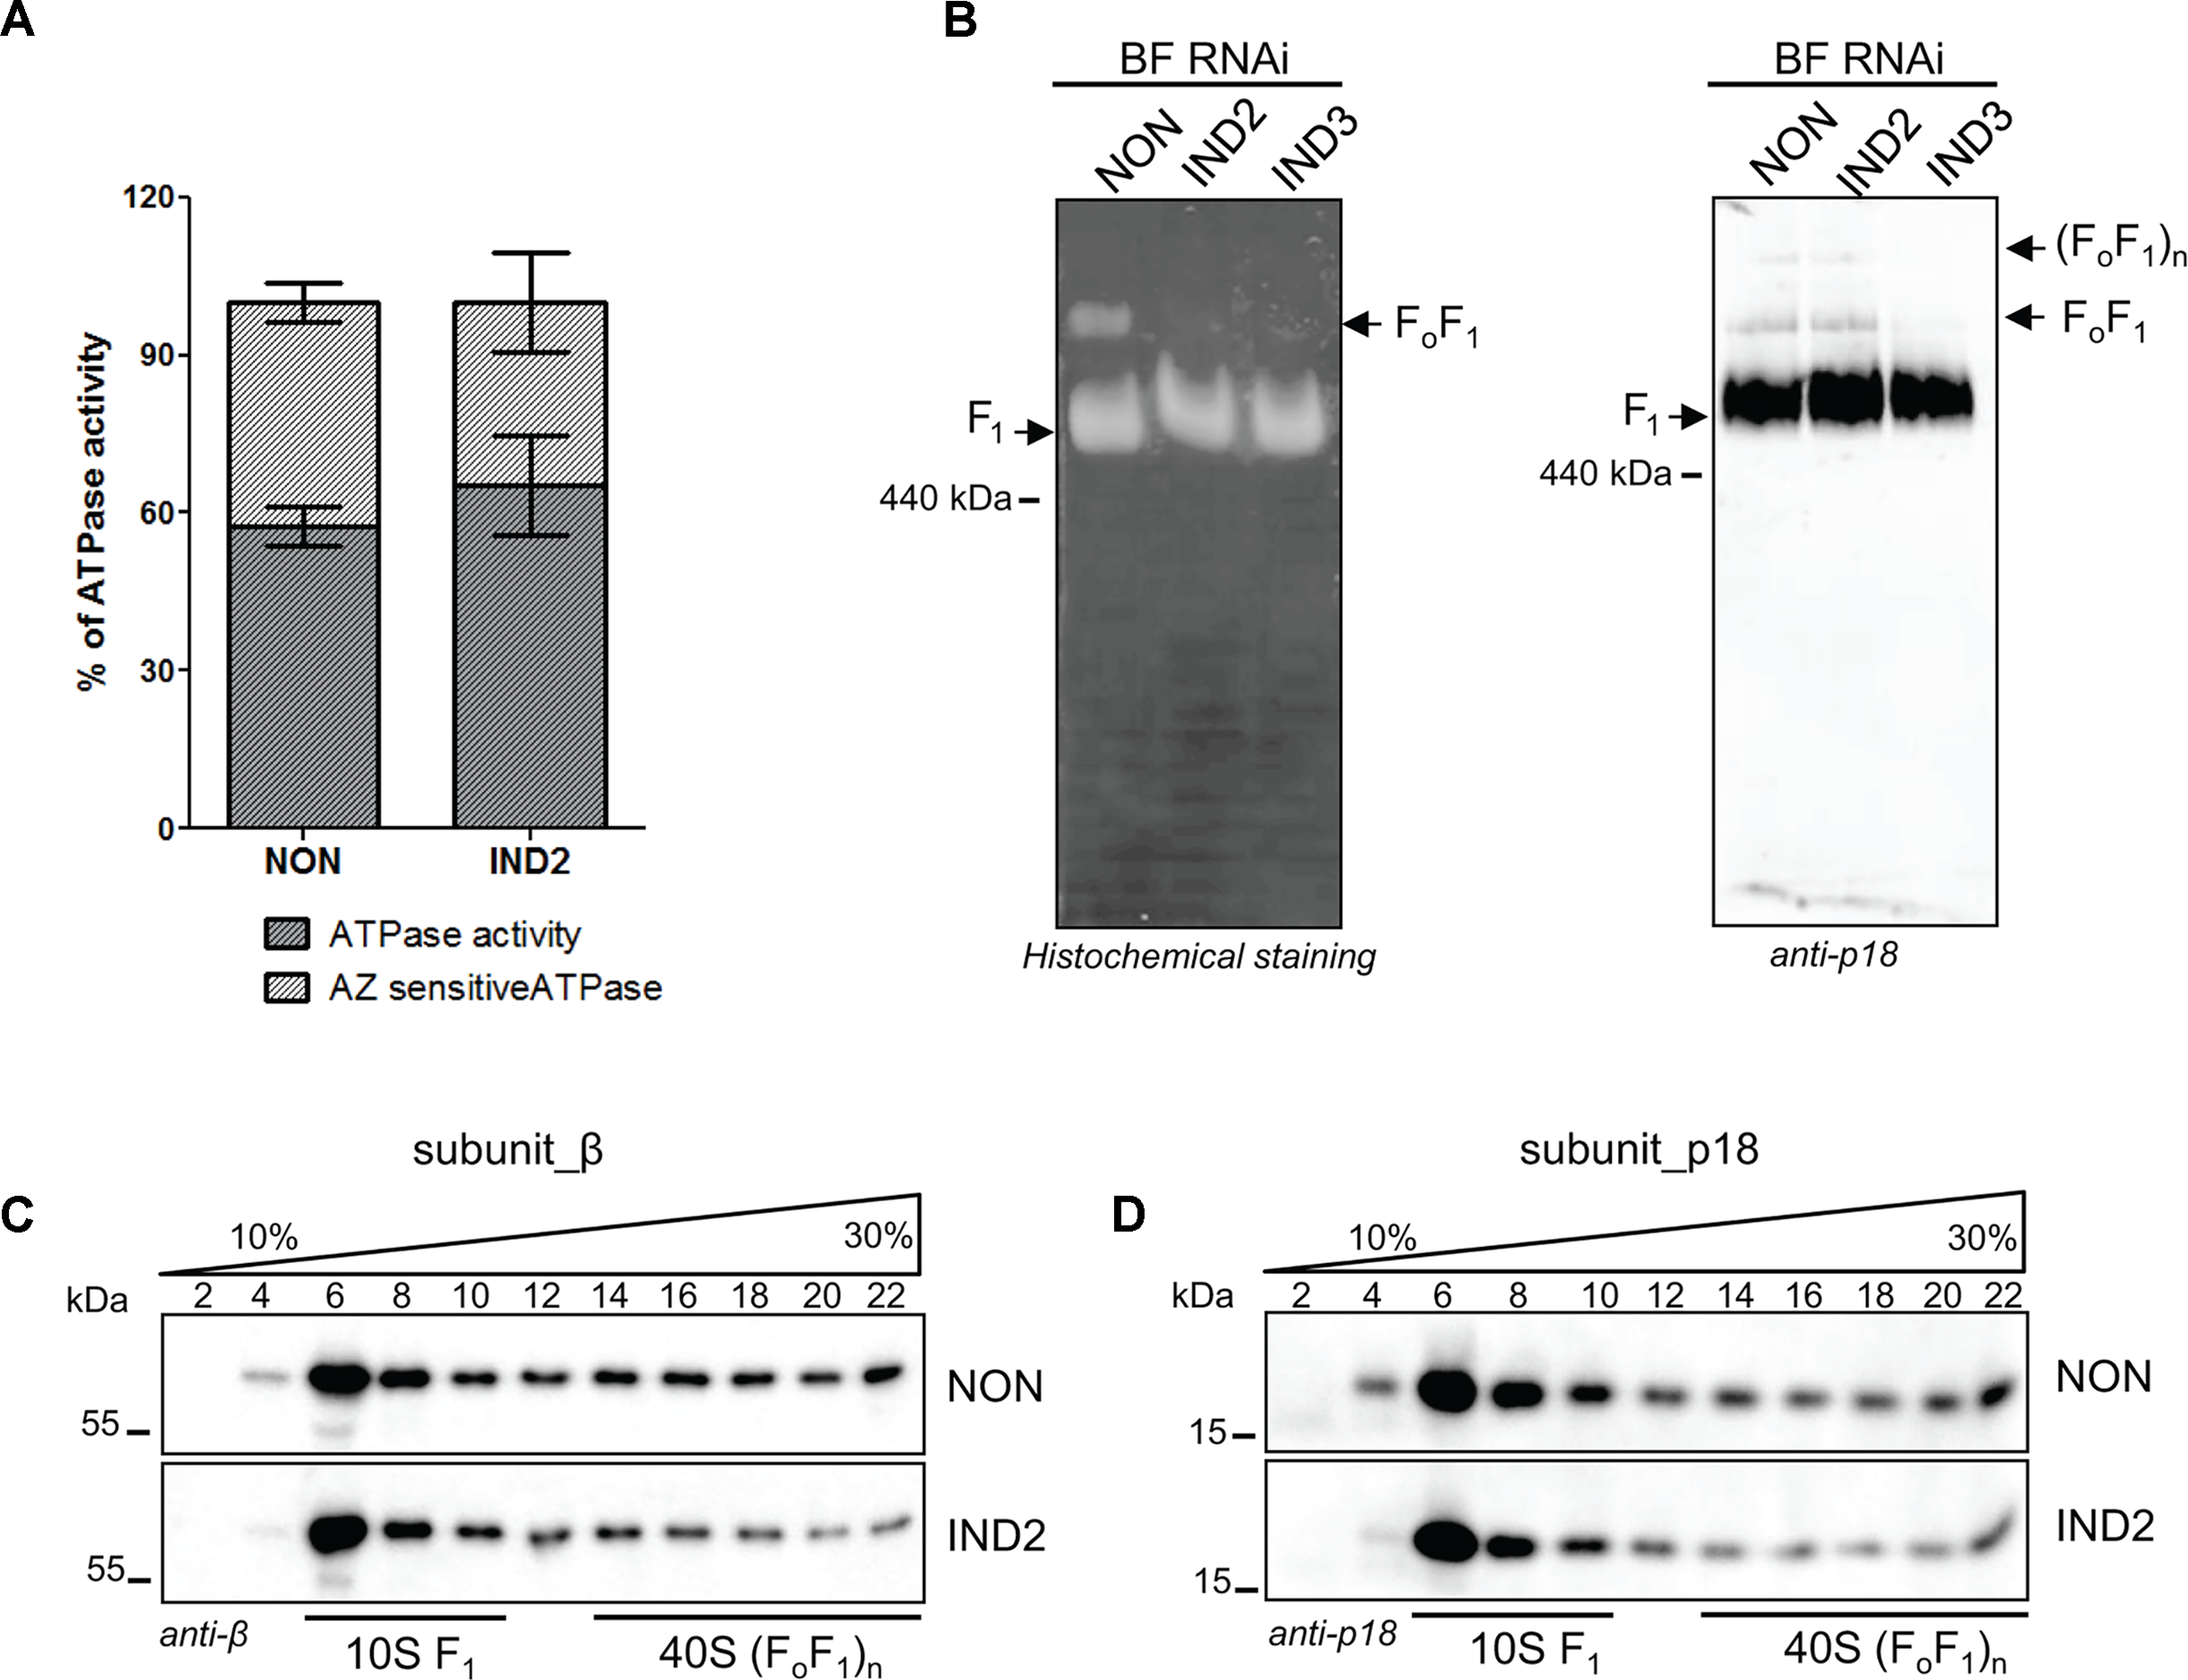 ATPaseTb2 depletion does not appreciably affect F<sub>1</sub>-ATPase activity in BF <i>T</i>.